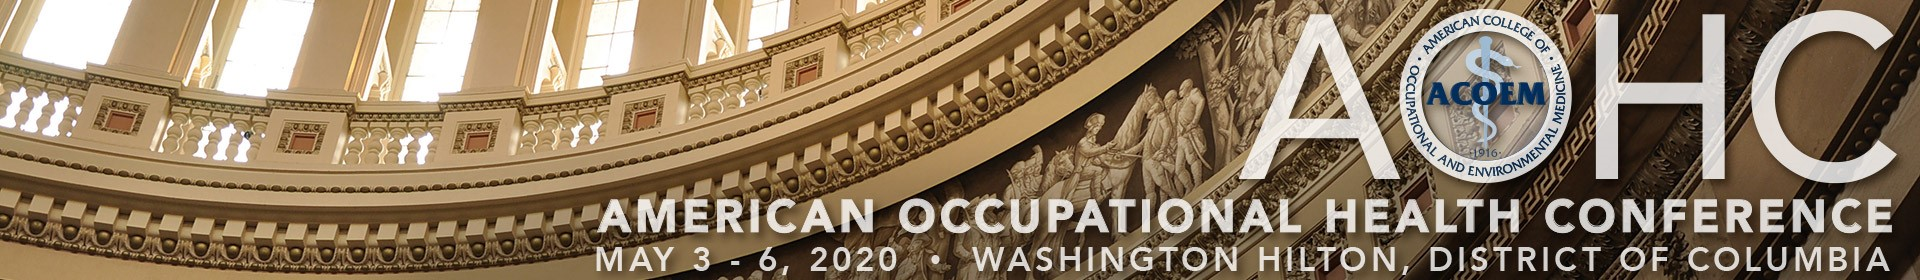 AOHC 2020 Event Banner